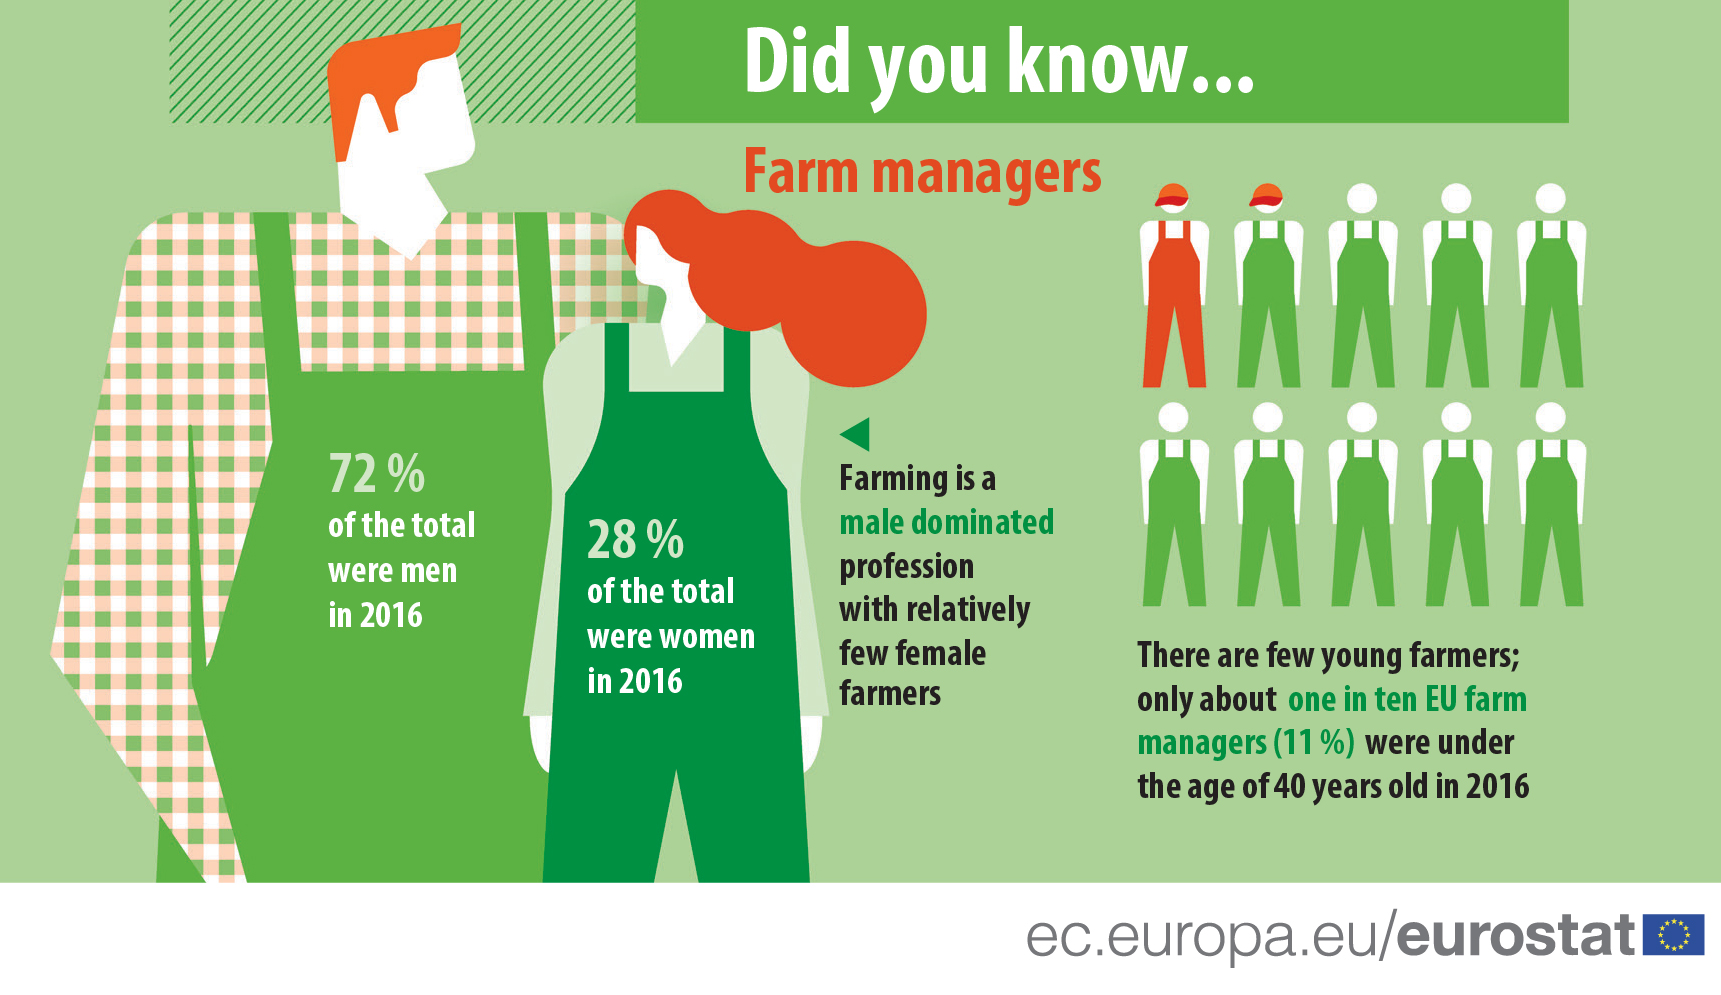 Infographic on farm managers